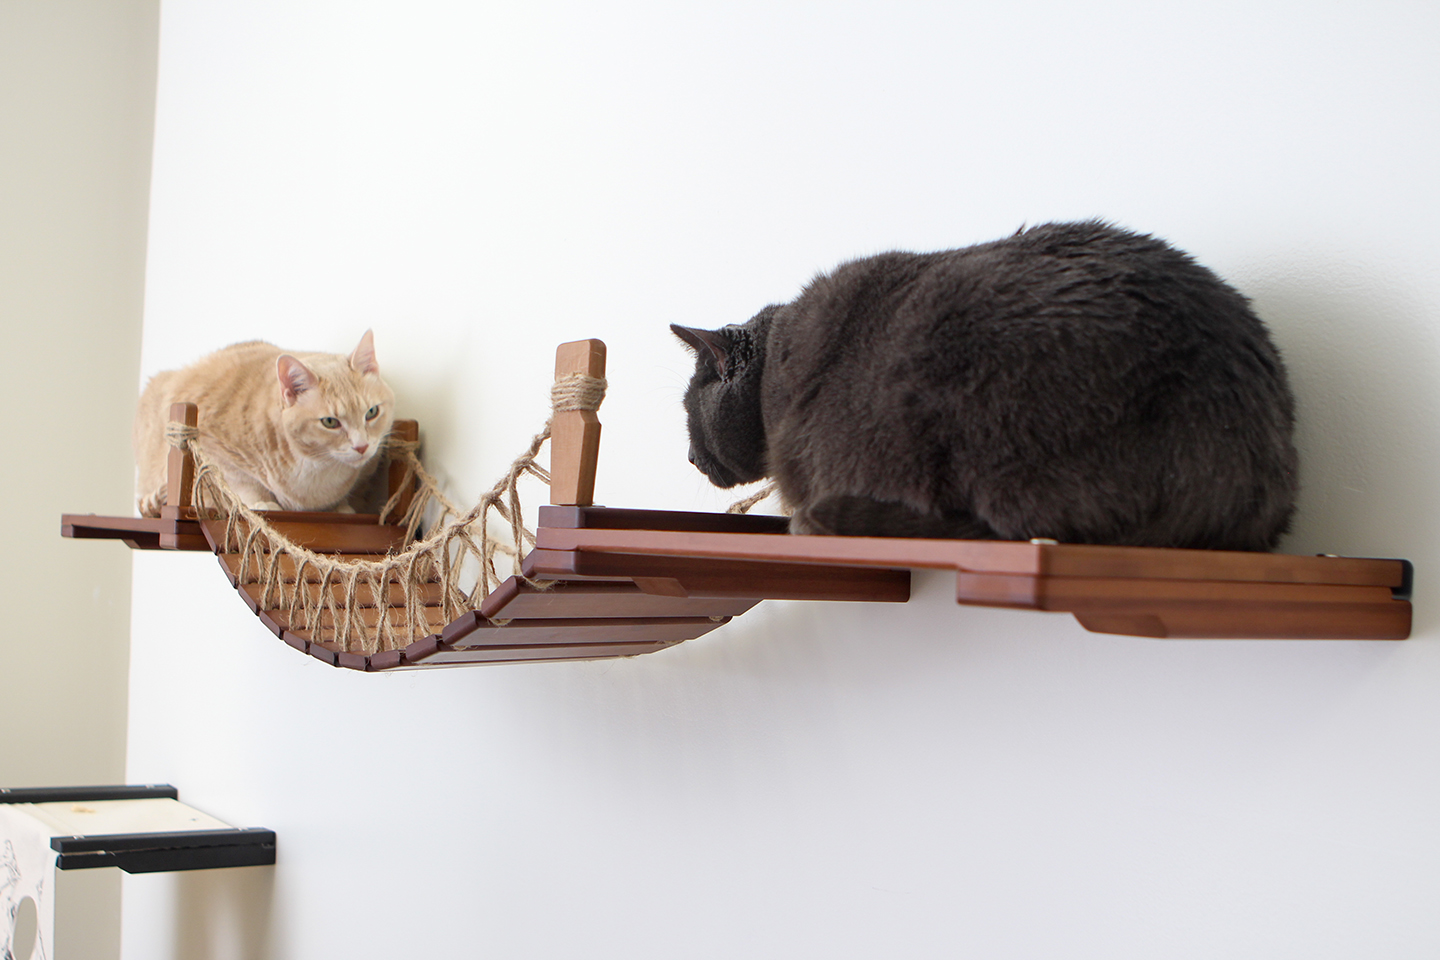 This photo displays two cats staring at one another from each shelf of the Bridge with Landings. This Bridge is in English Chestnut, a dark brown stain.